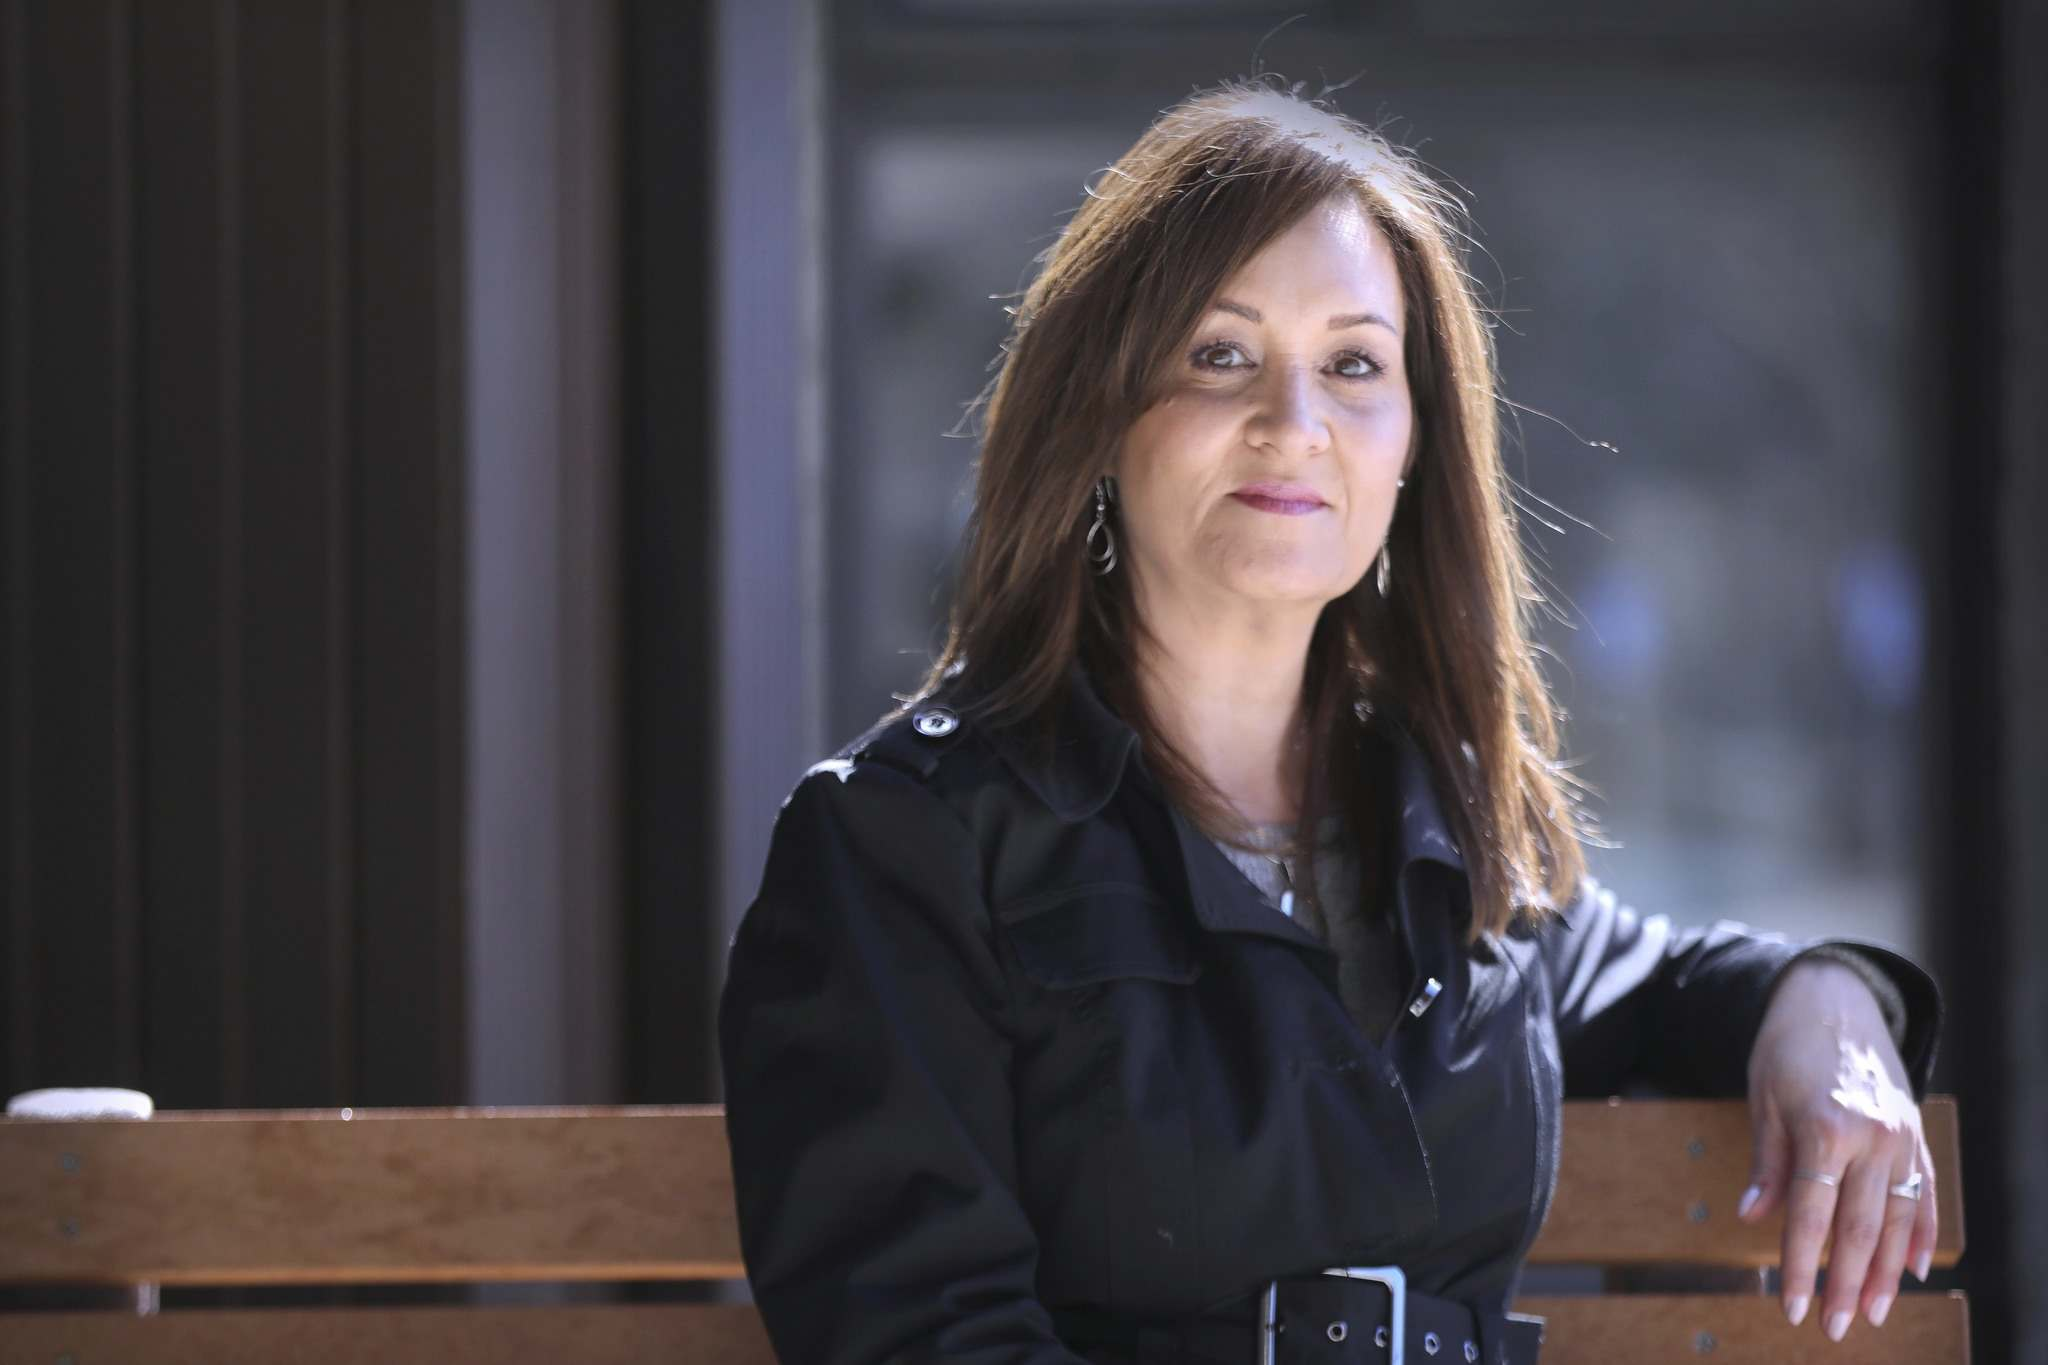 """""""I'll never forget that gut-wrenching feeling when the case came back positive,"""" says River East Personal Care Home administrator Kim Rohm, thinking back to Nov. 12. (Ruth Bonneville / Winnipeg Free Press)"""